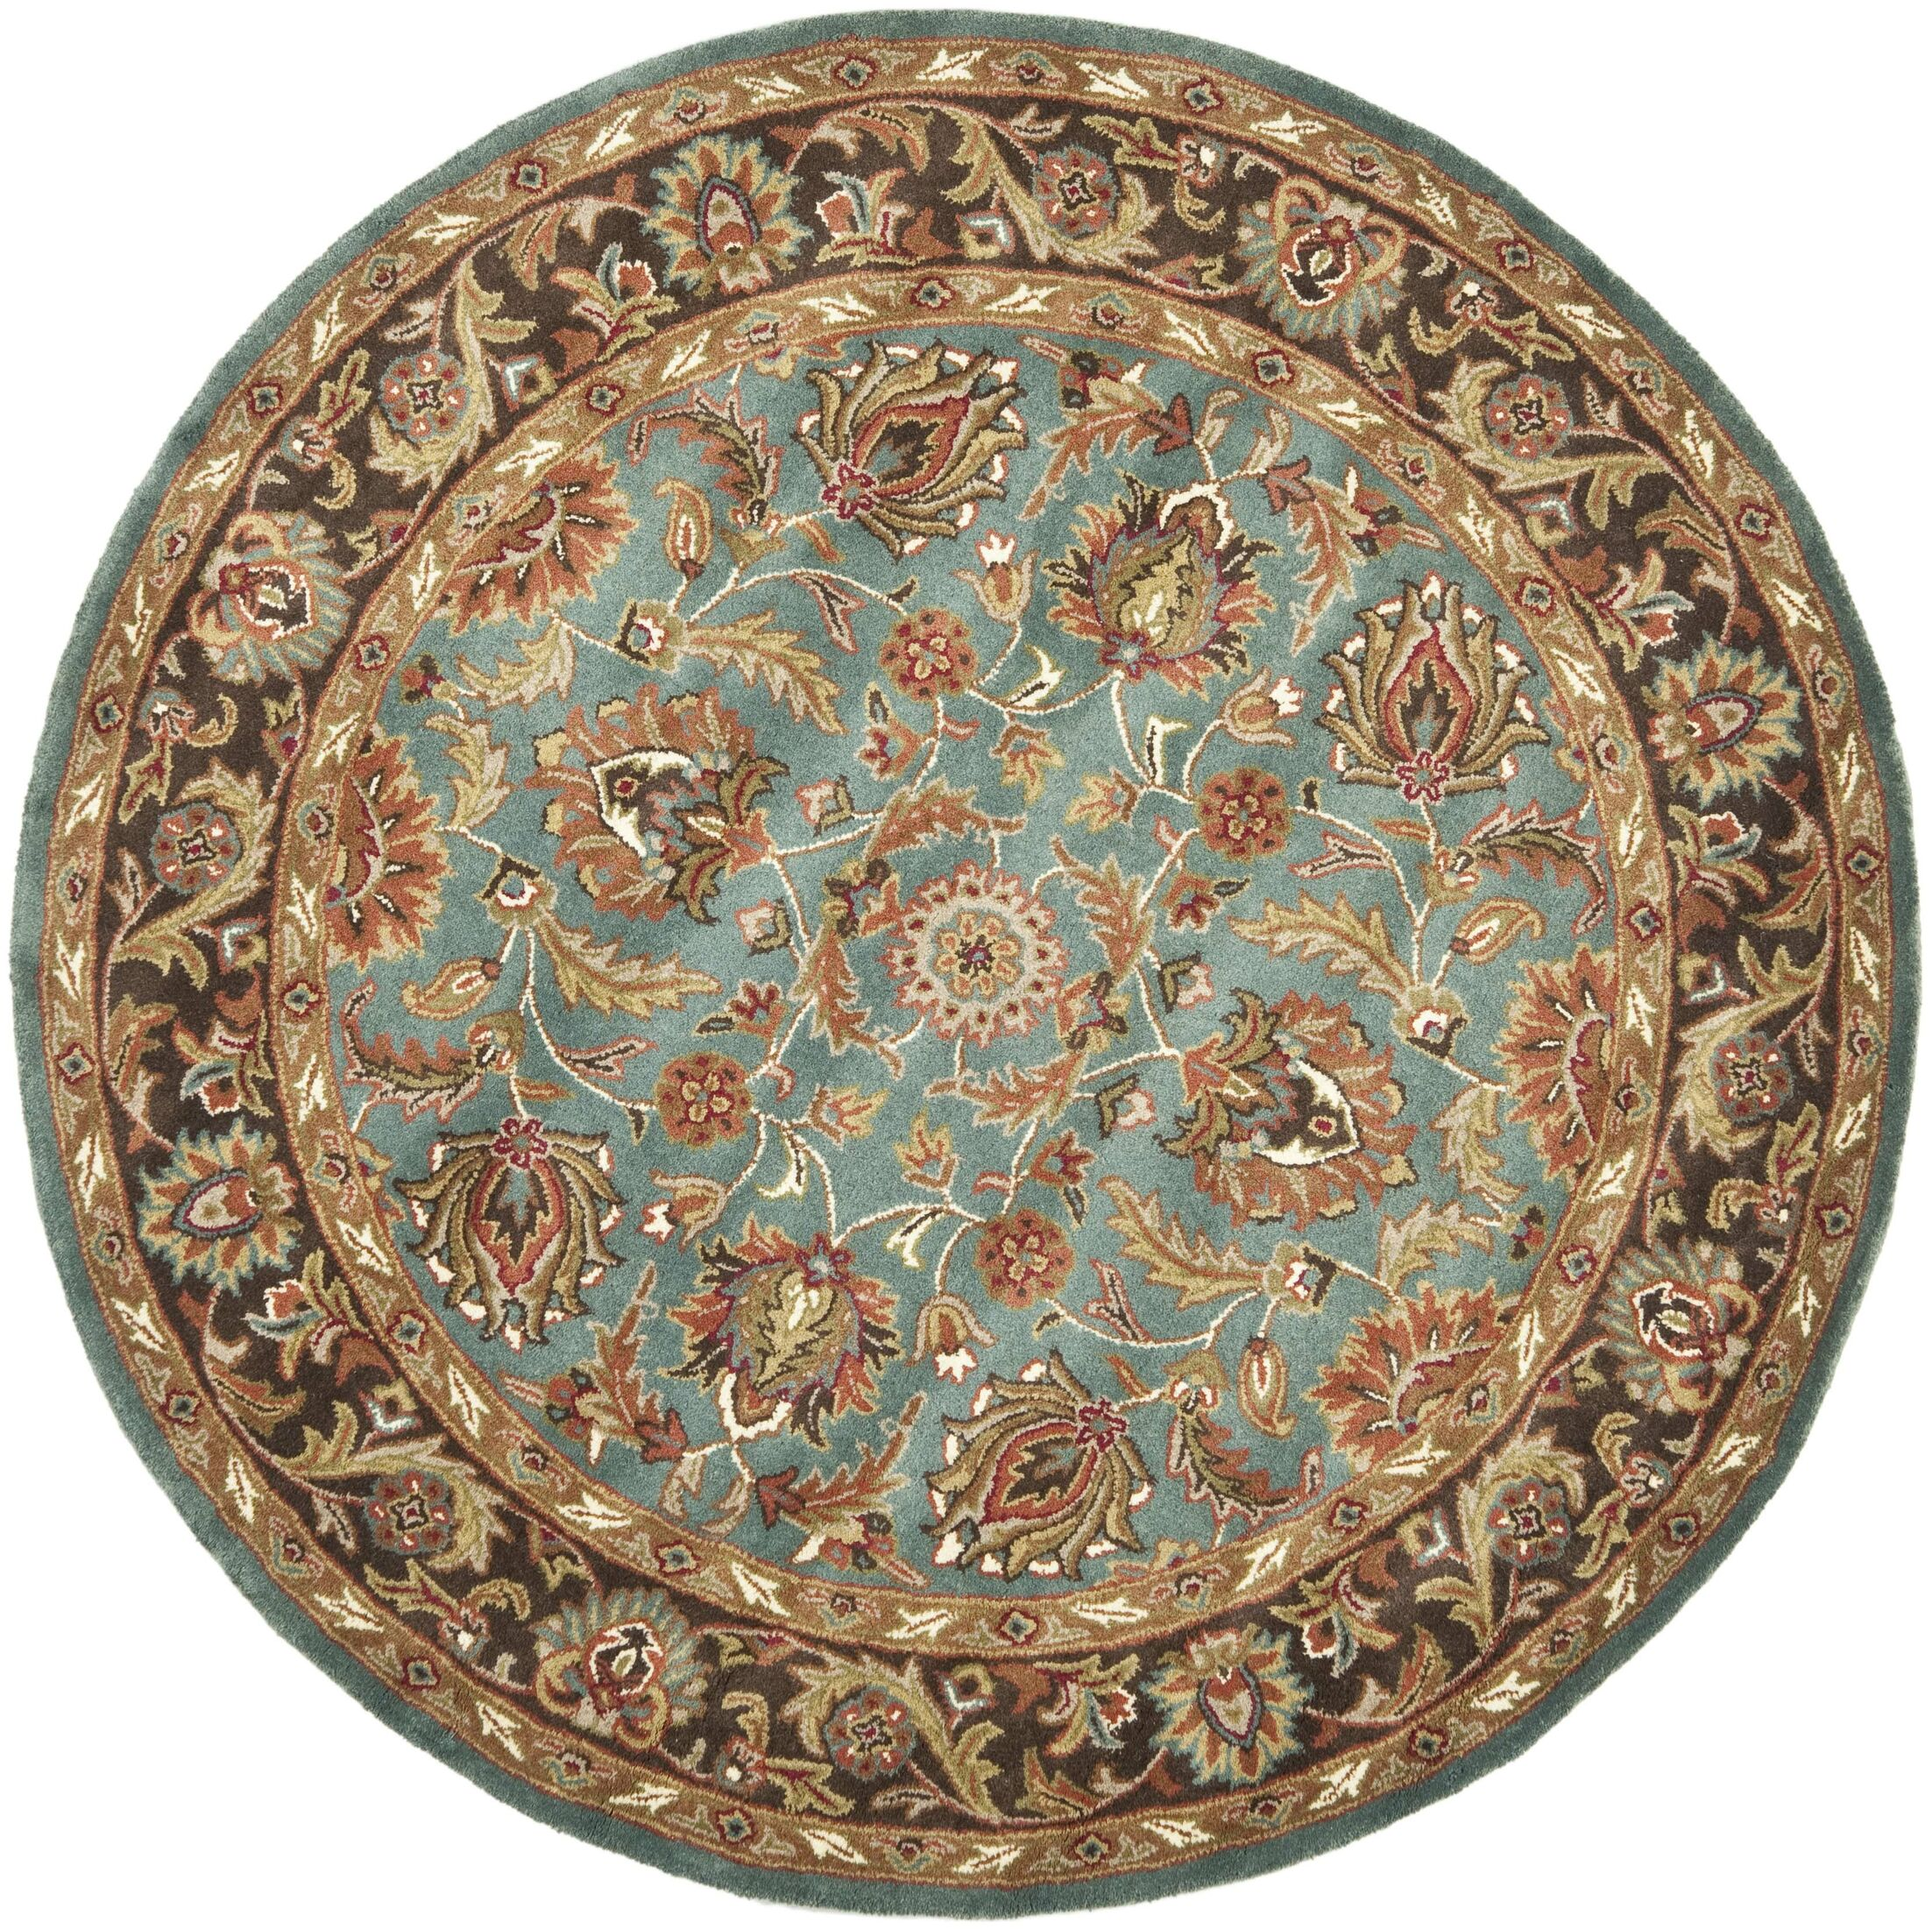 Cranmore Hand-Tufted Blue/Brown Area Rug Rug Size: Round 8'